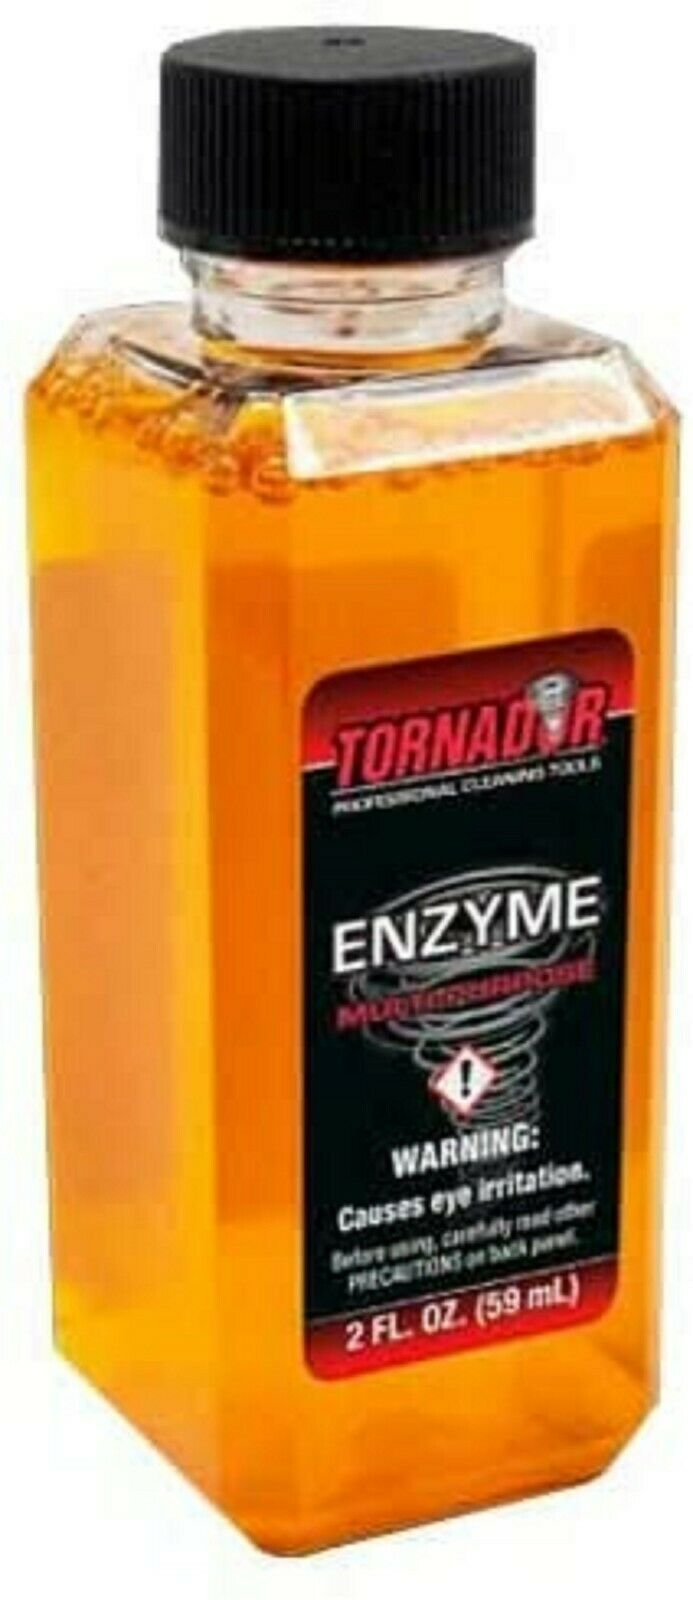 Load image into Gallery viewer, Tornador Z-010 Cleaning Gun Starter Kit with 2oz. Enzyme Cleaner